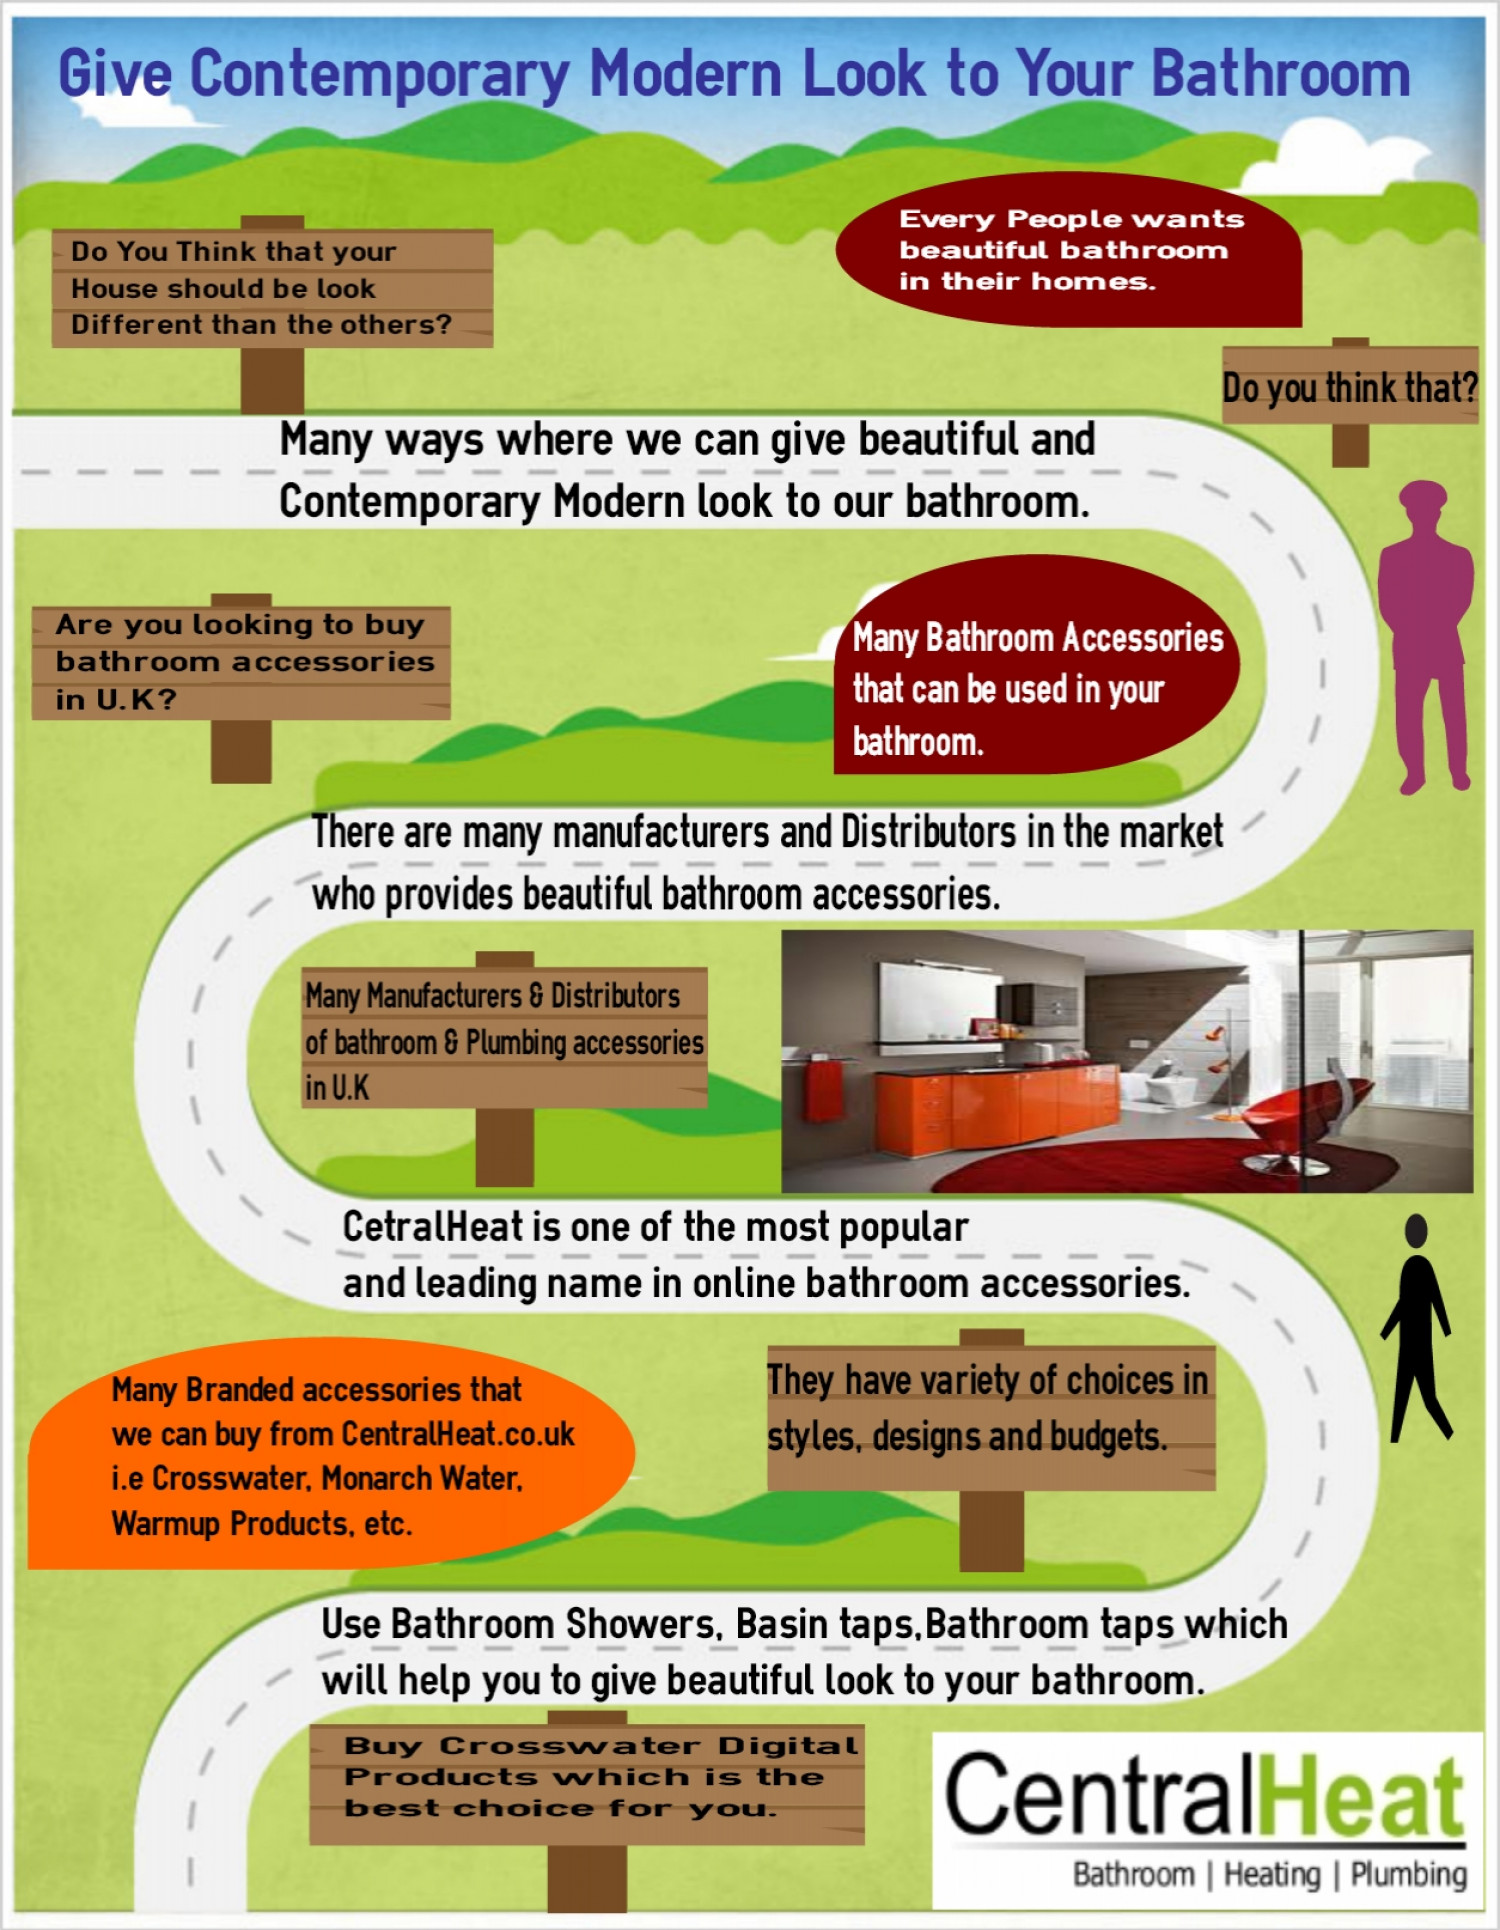 Give Contemporary Modern Look to Your Bathroom Infographic